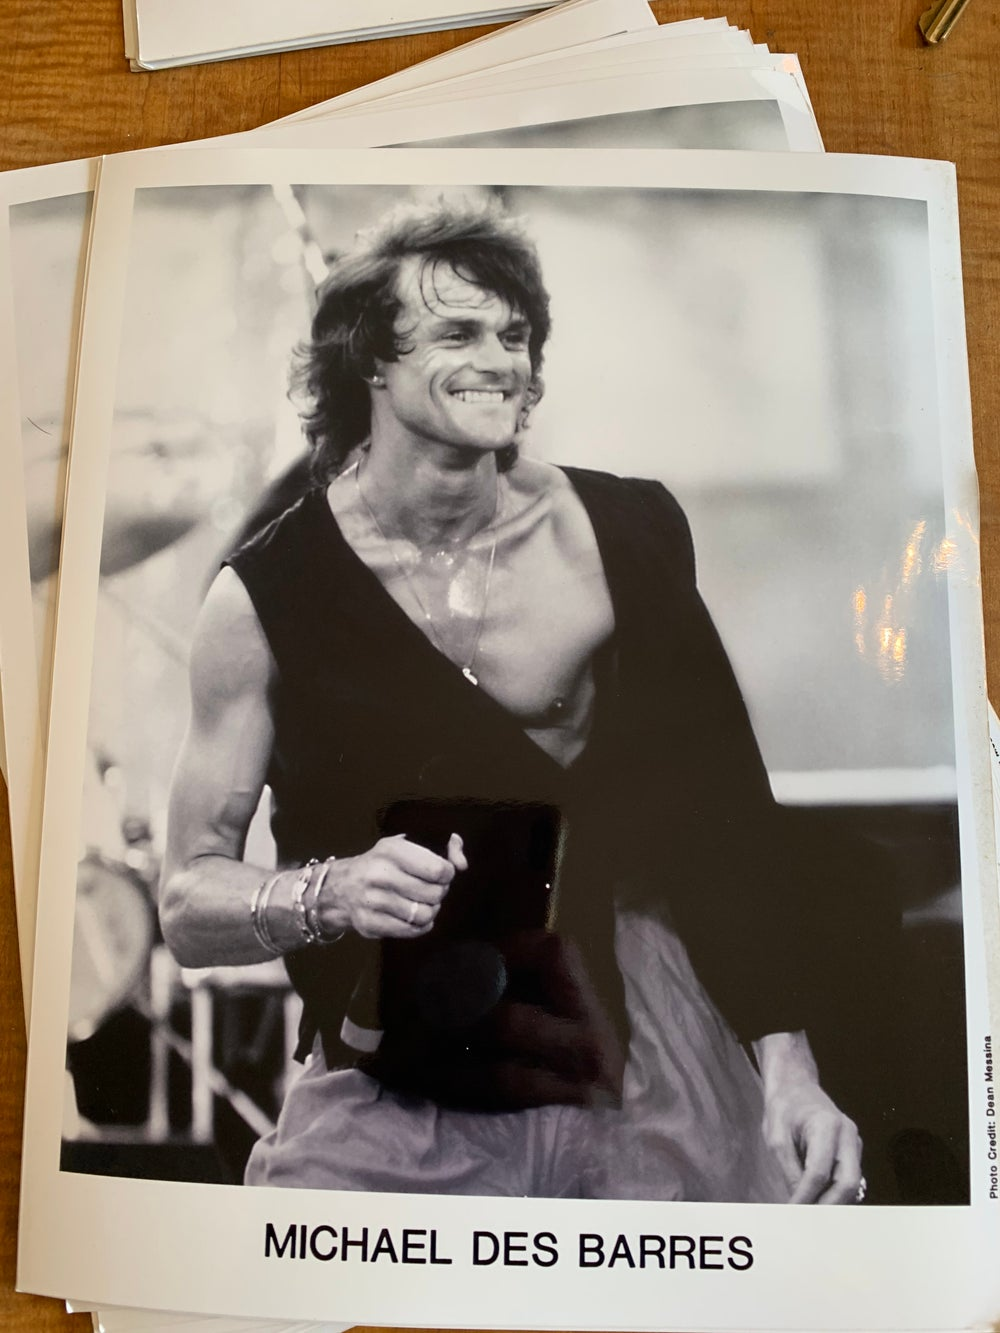 Image of Autographed Live Aid photo